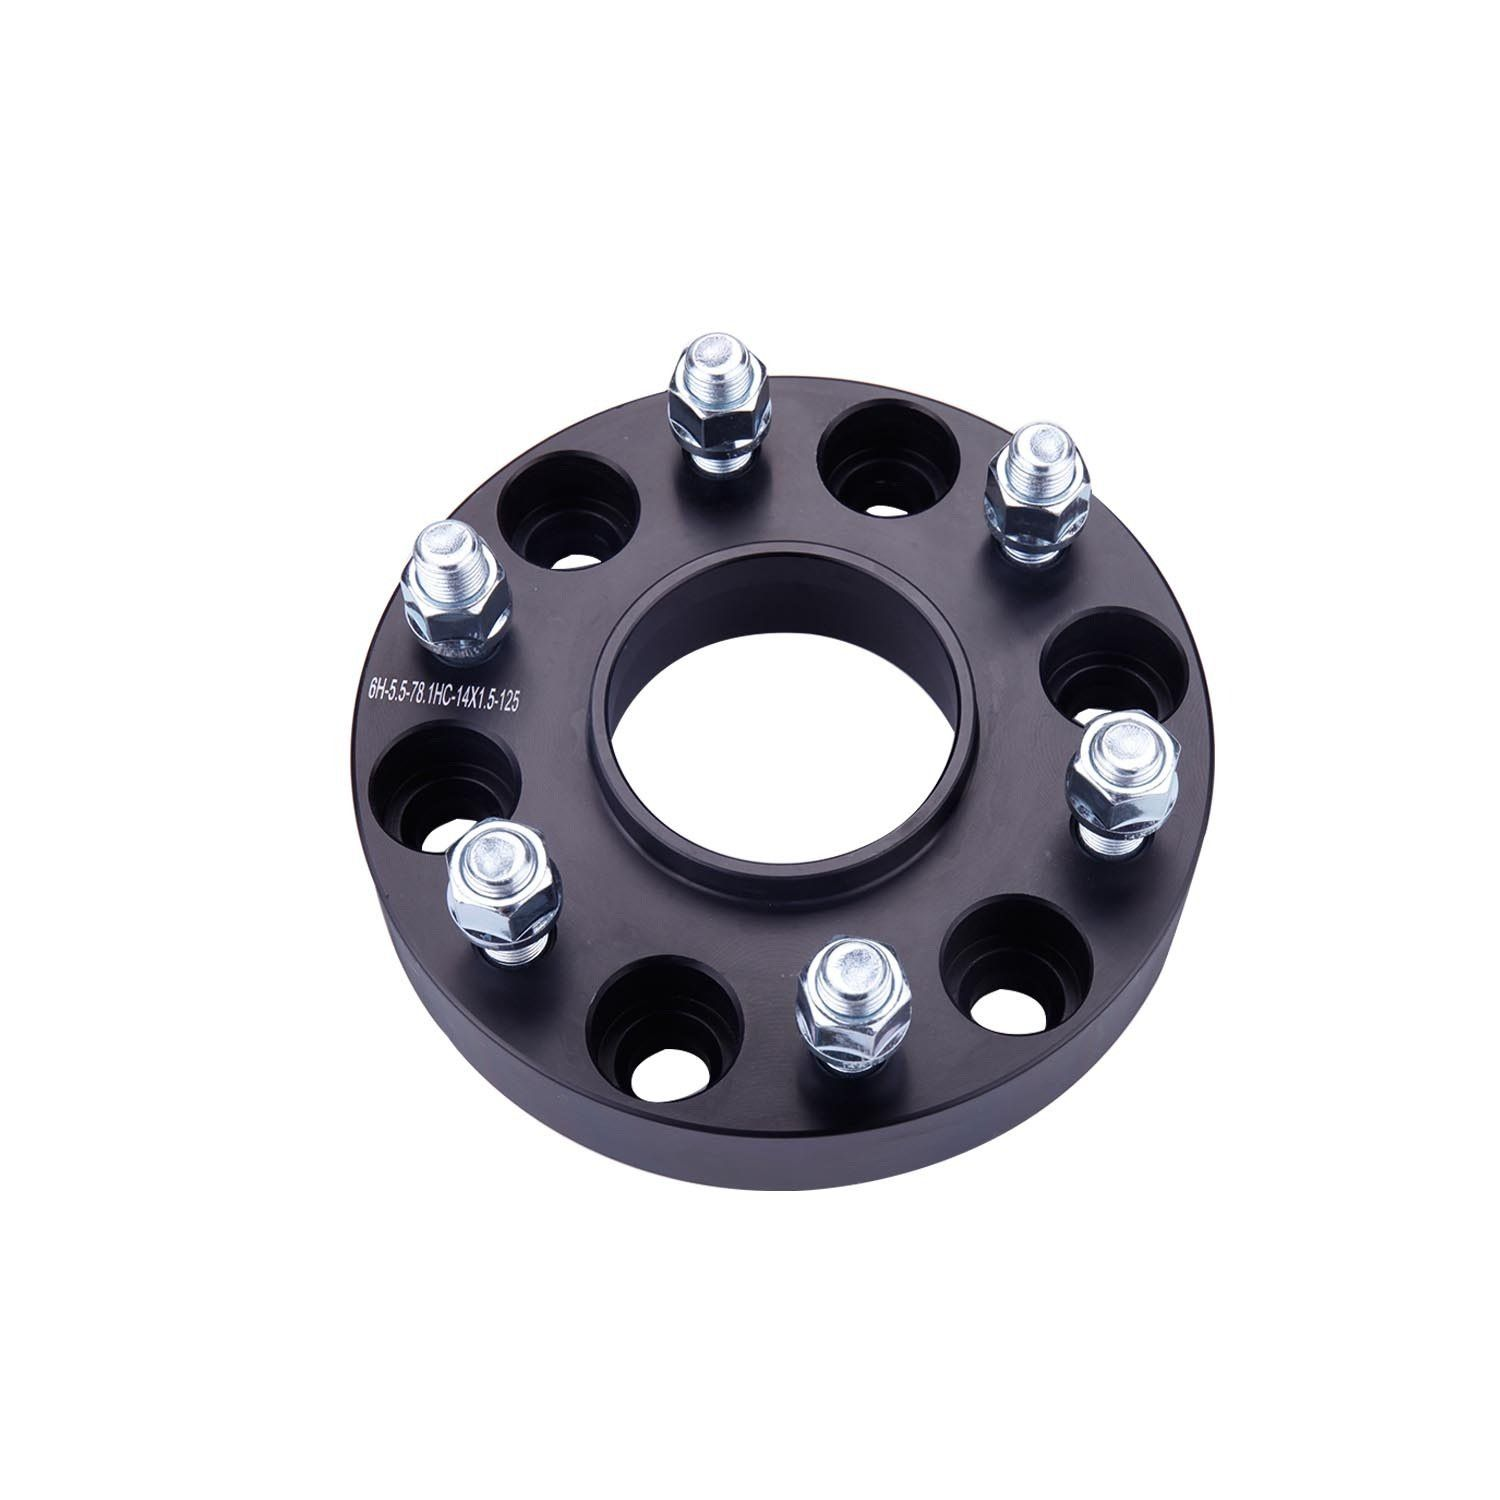 Wheeltech 4 Pcs 6x5 5 Black Fit Chevy Silverado 1500 Hub Centirc 1 25 Inch Wheel Spacers You Can Find Out Mo Chevy Silverado 1500 Chevy Silverado Silverado